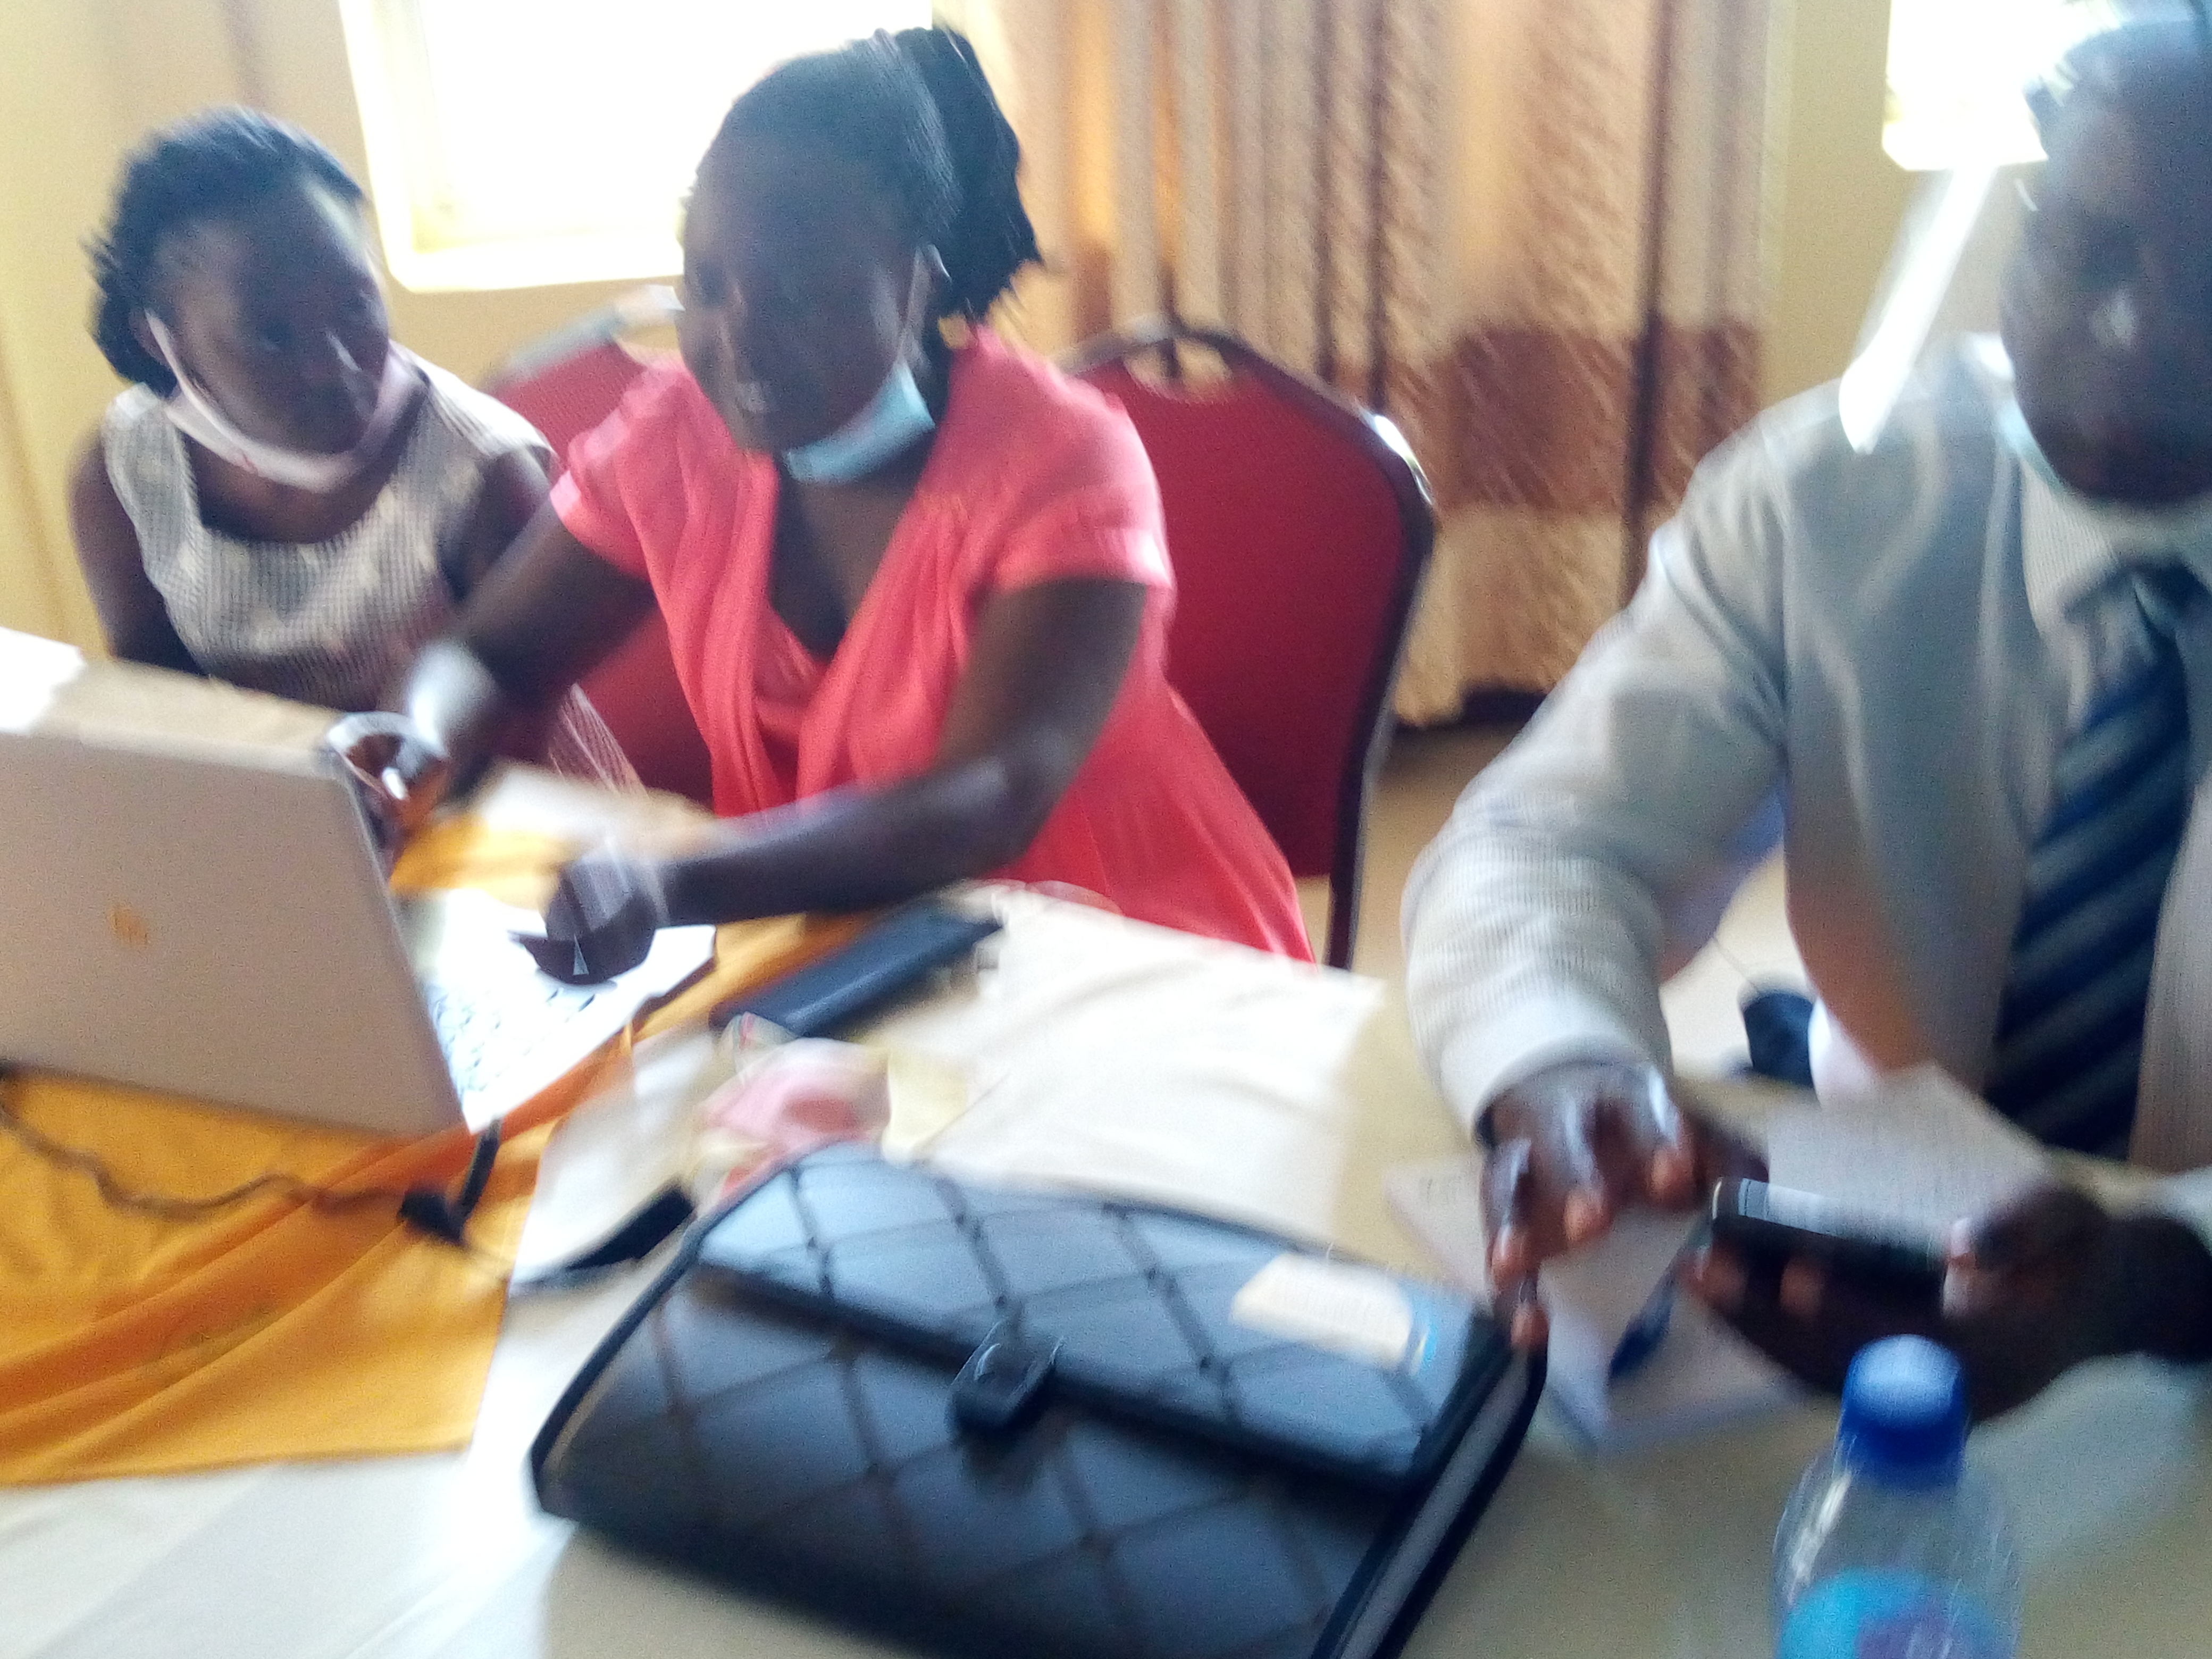 Some of the participants at the training.